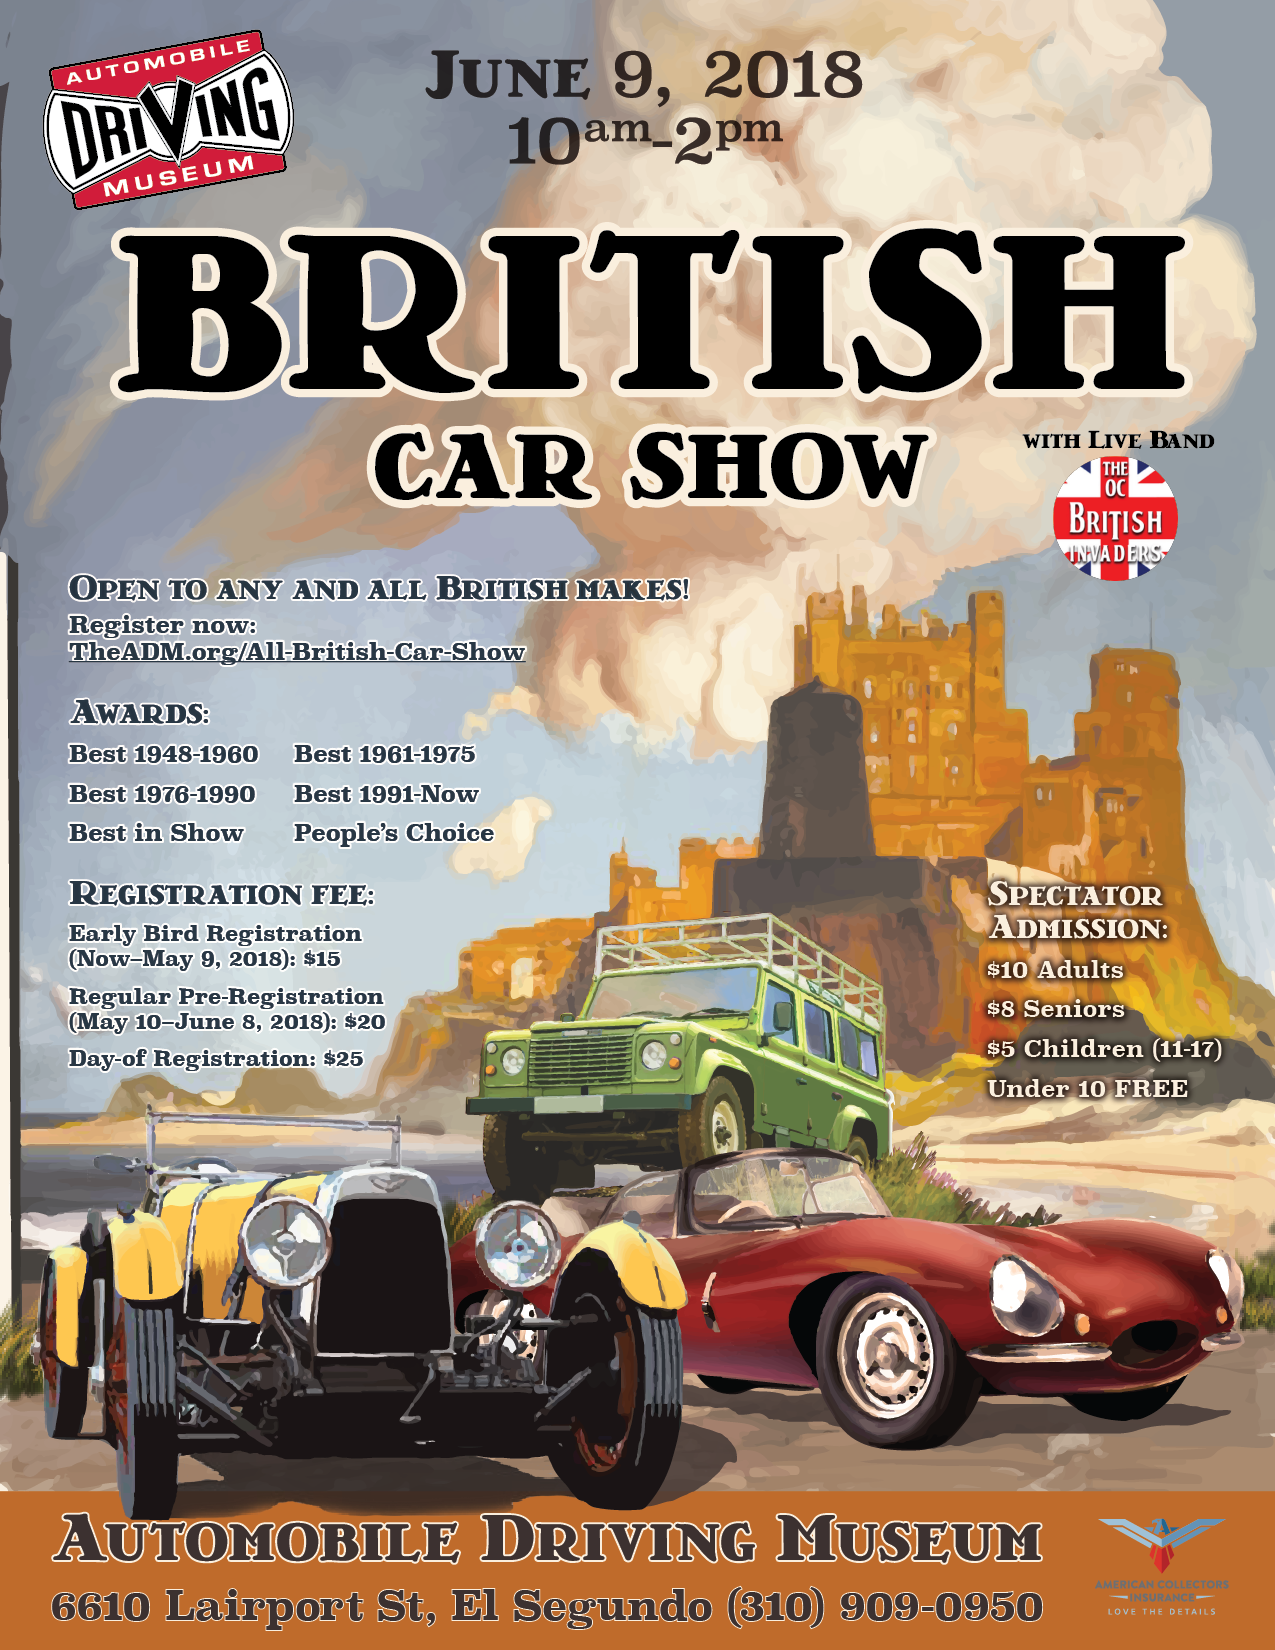 Automobile Driving Museum British Car Show Events Jaguar - Any car shows near me